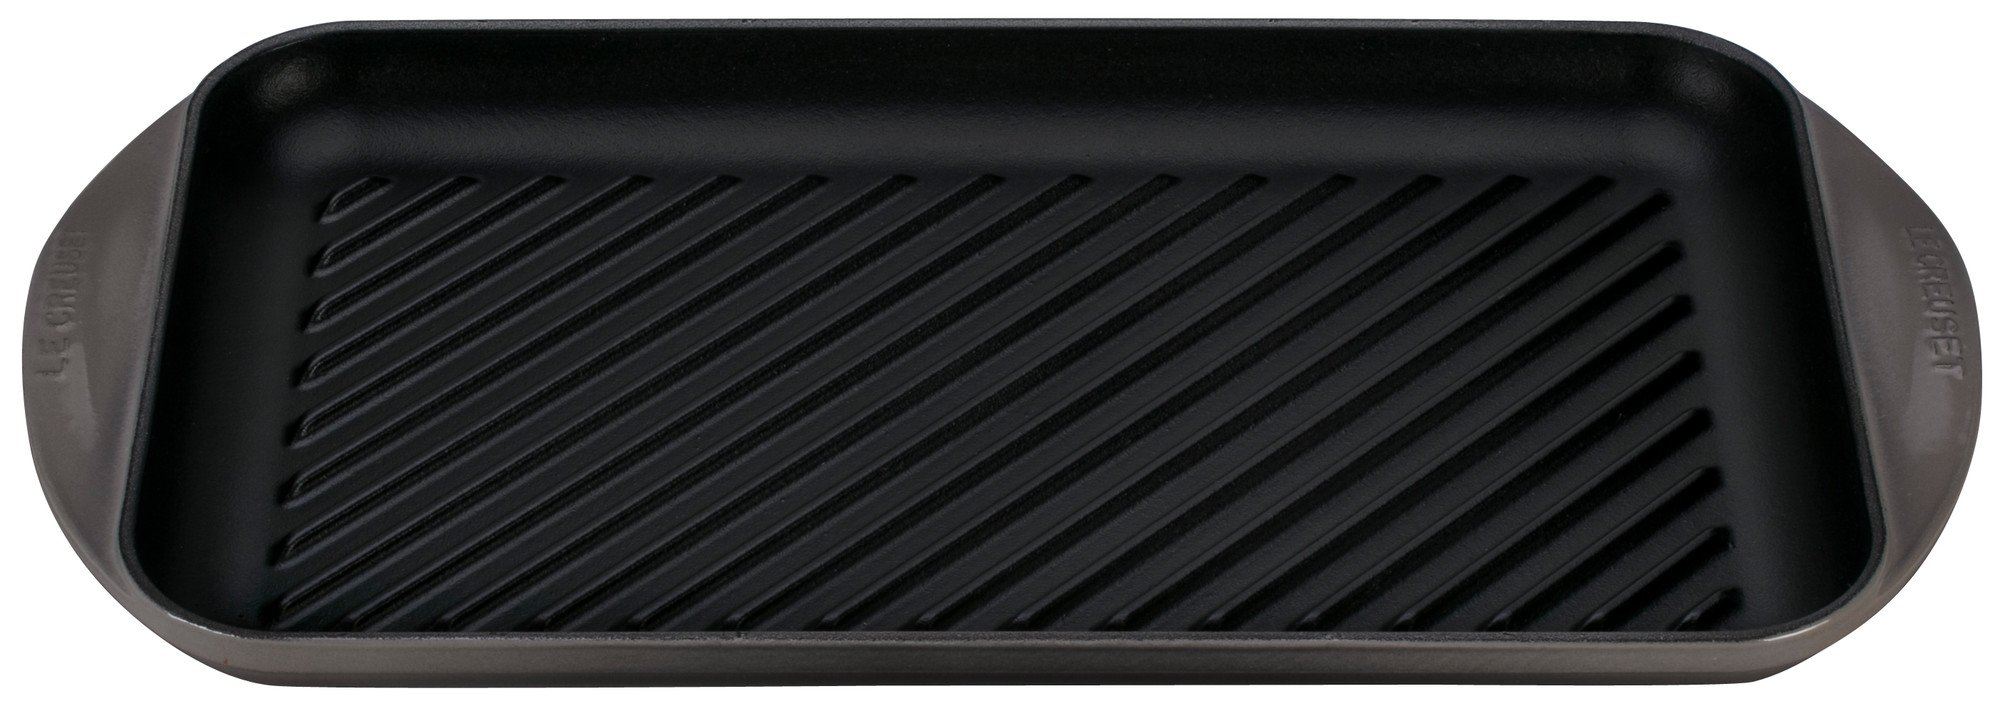 Le Creuset of America Enameled Cast Iron Double Burner Grill, 15 3/4'' x 9'' x 1''/X-Large, Oyster